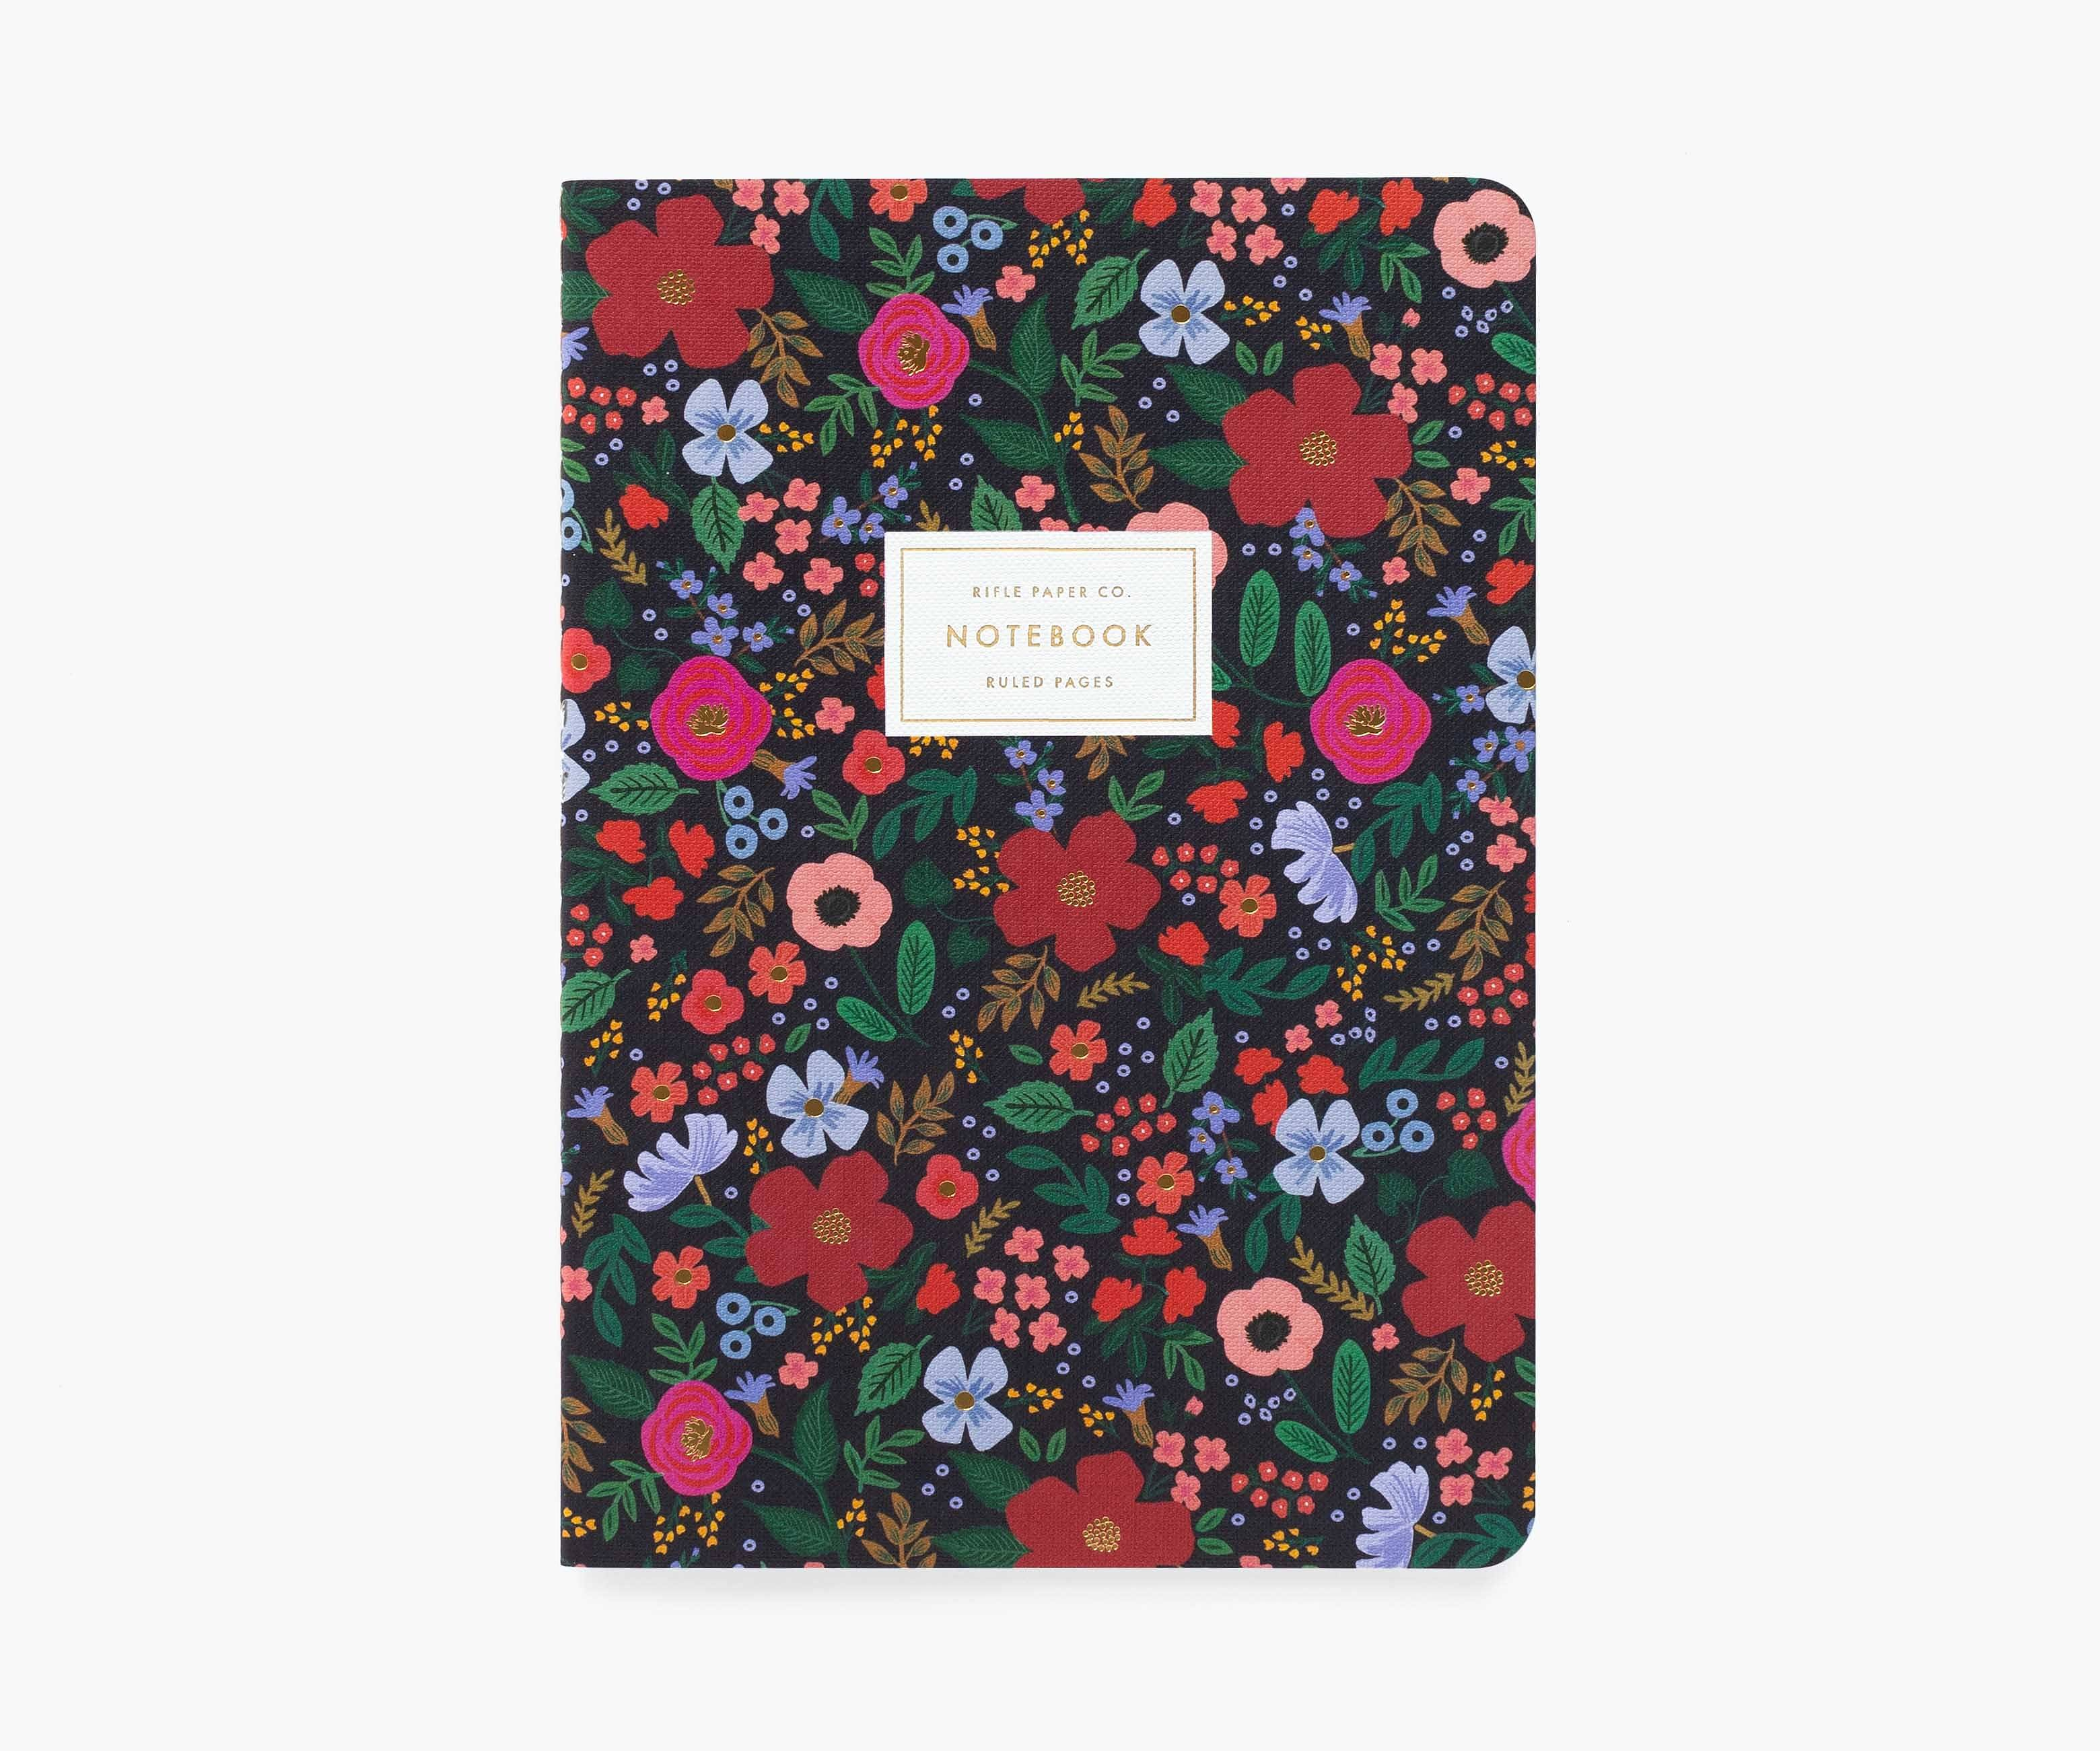 RIFLE - Wild Rose Stitched Notebook, Black